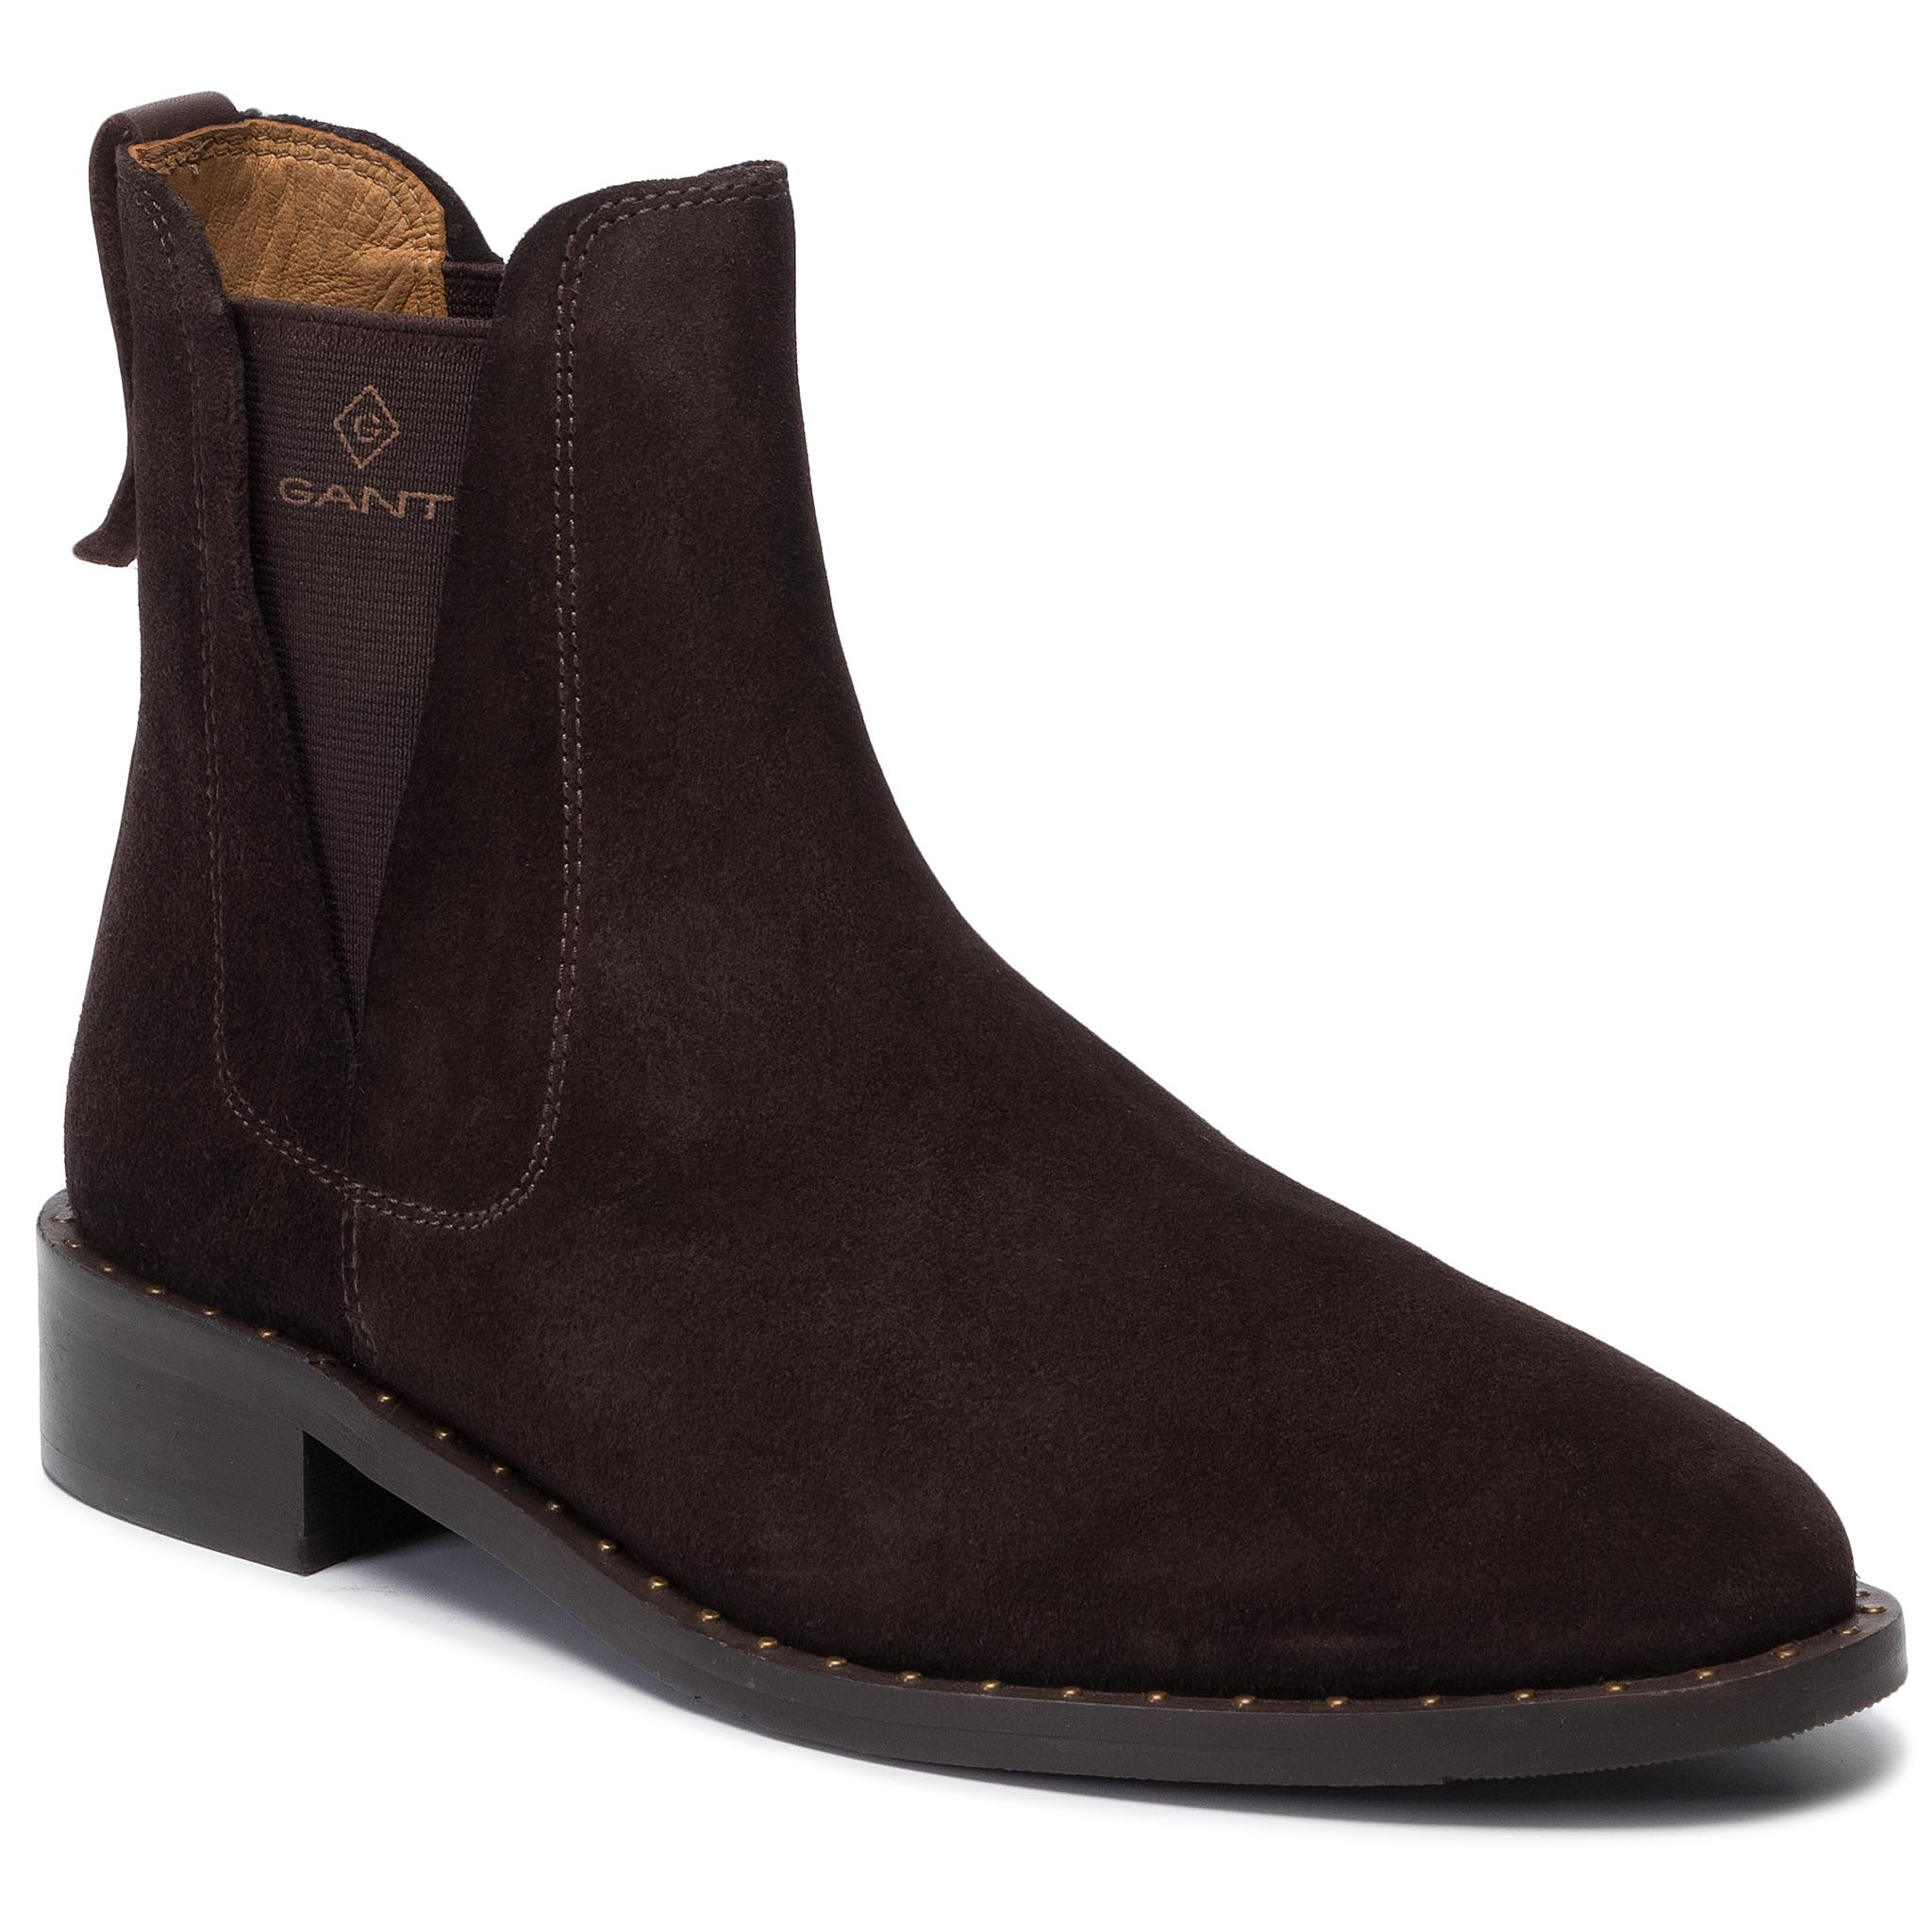 Ghete Jodhpur GANT - Hampton 19553992 Dark Brown G46